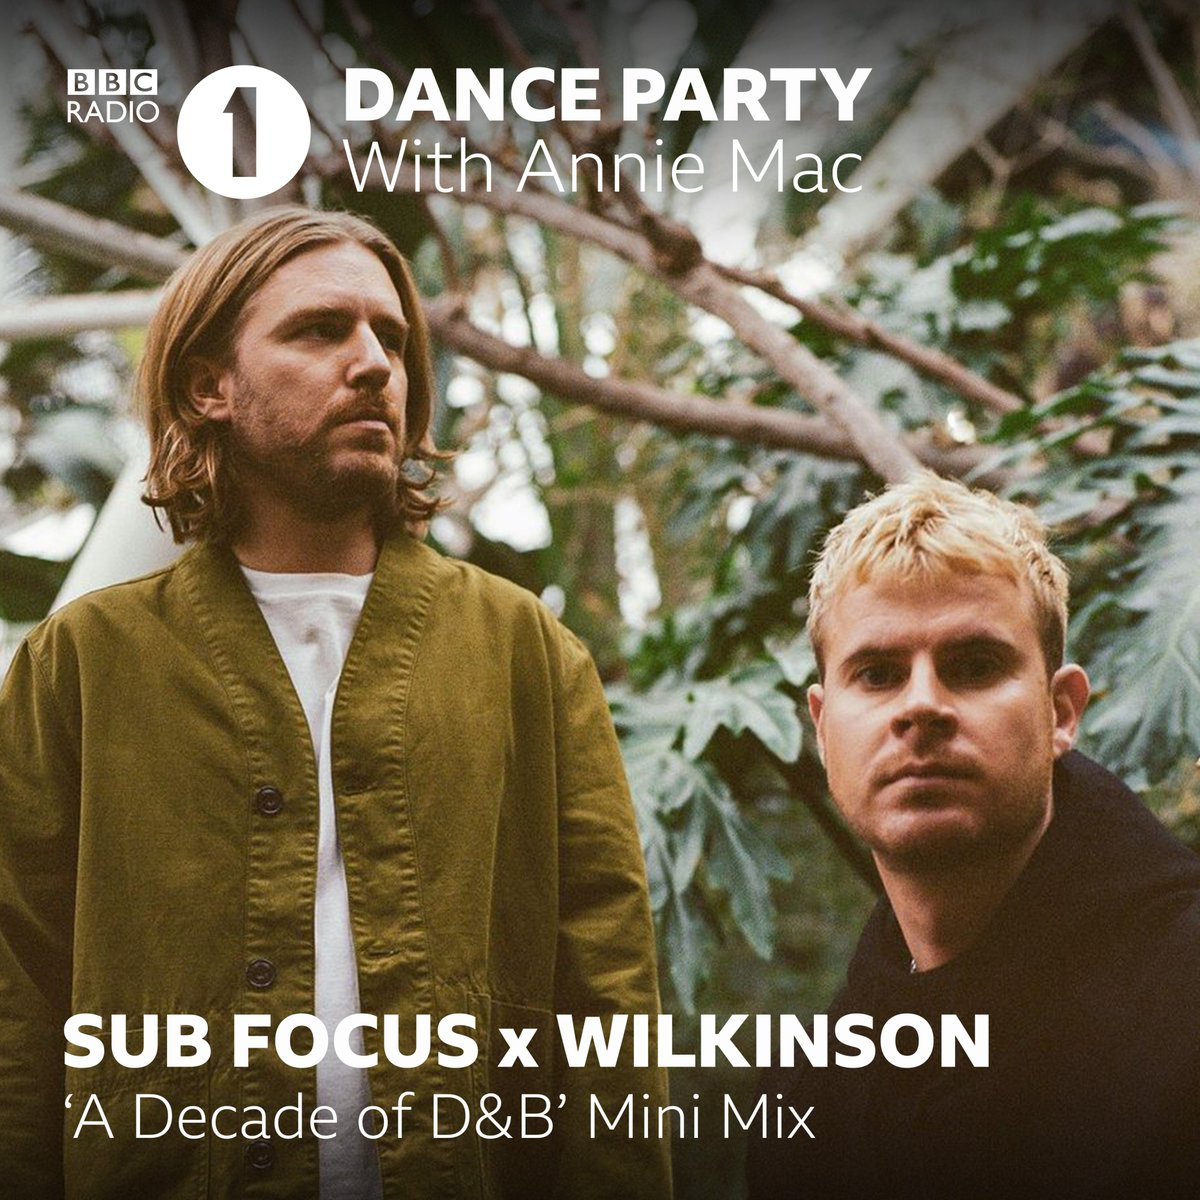 Sub Focus & Wilkinson - A Decade of D&B Minimix (2010-2020)  Tonight from 7pm with @AnnieMac on @BBCR1! https://t.co/4KMmewruxu